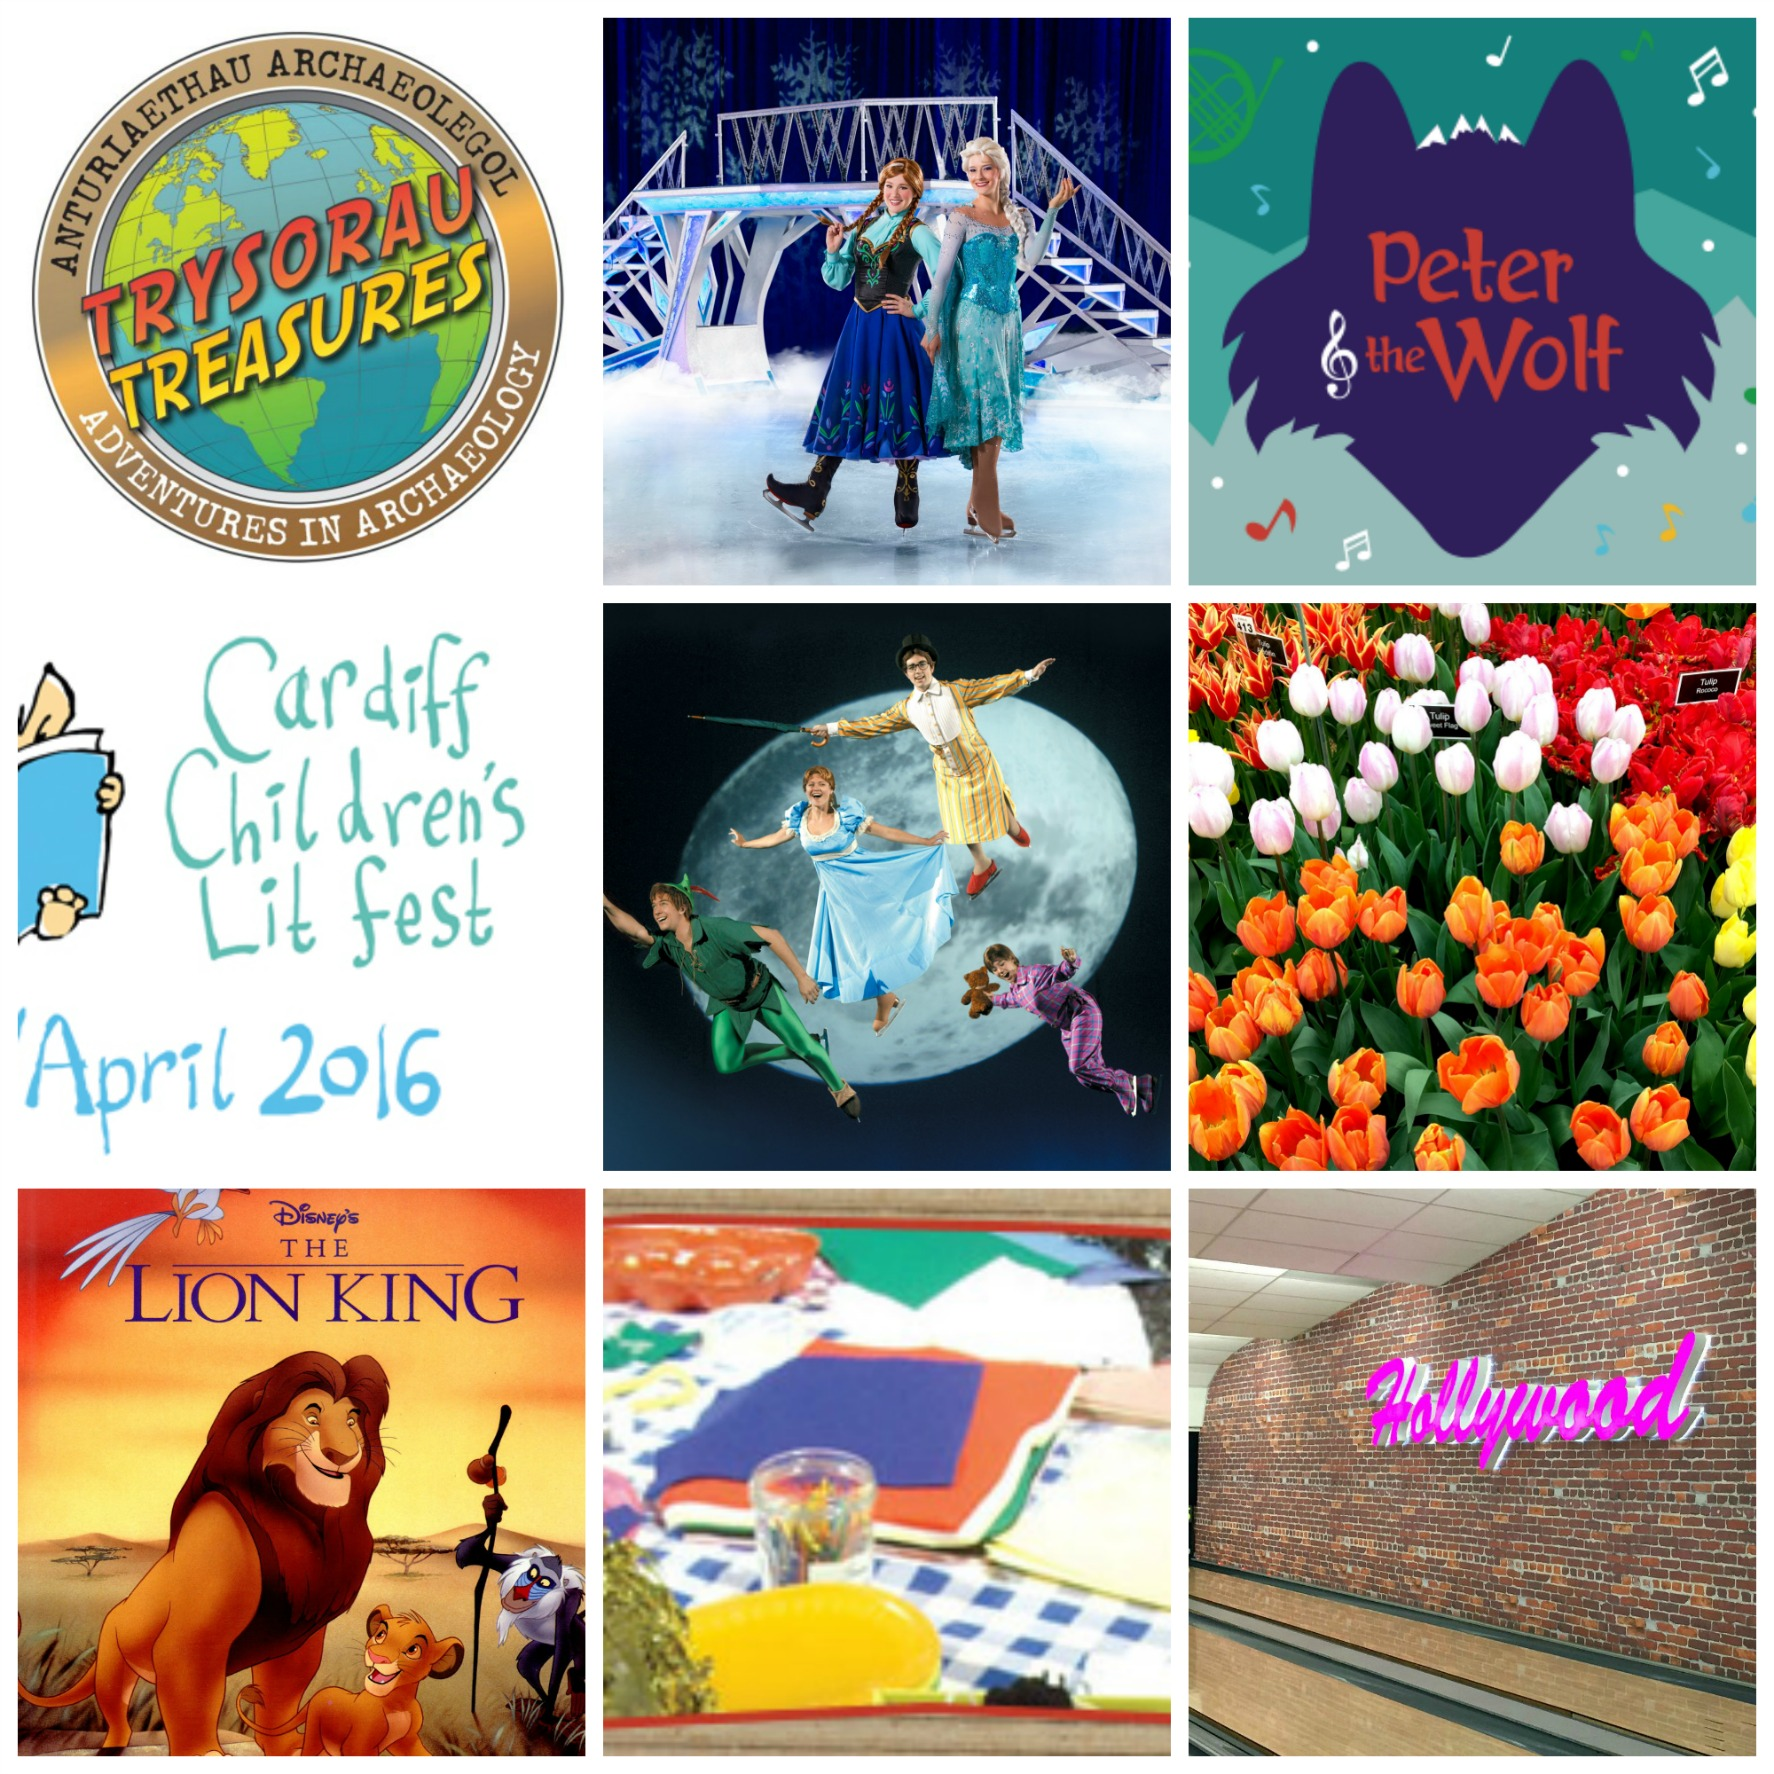 Events April 2016 collage